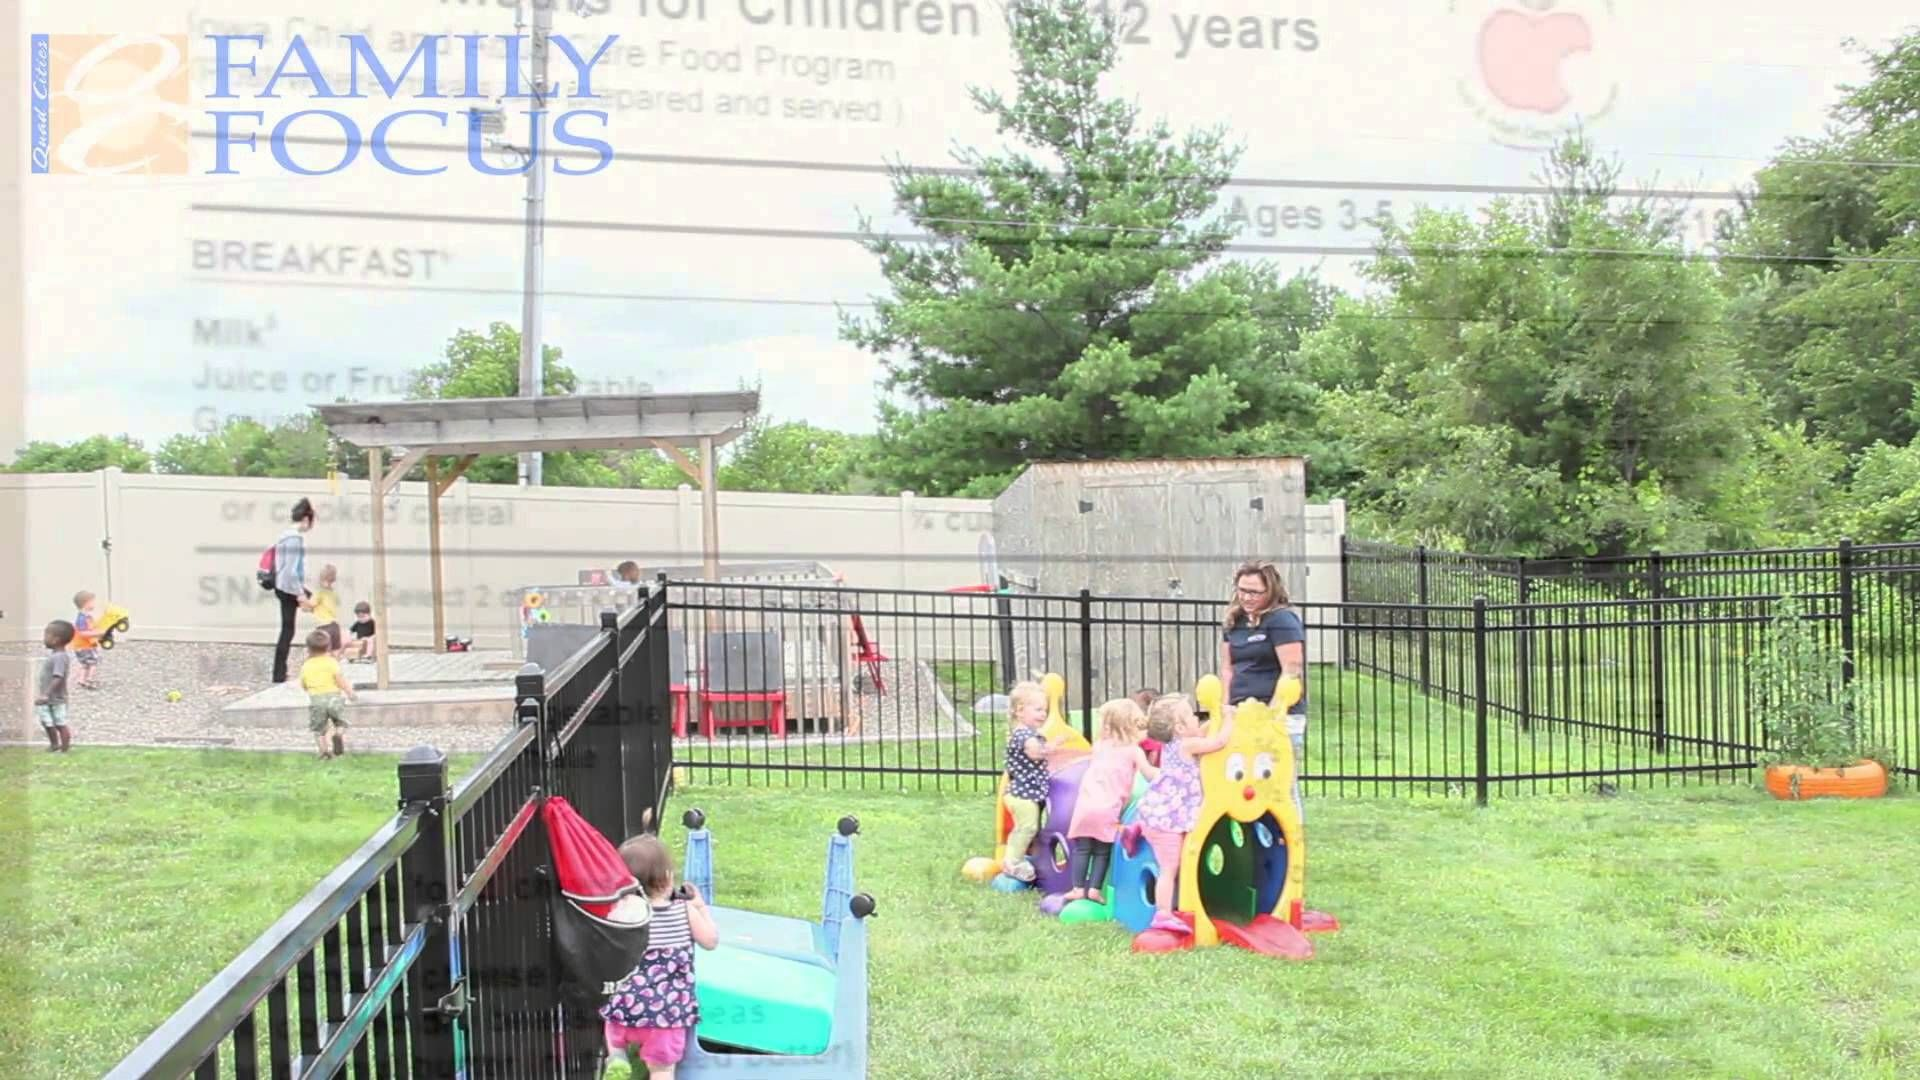 Family Focus Friday Finding Quality Child Care Childcare Family Focus